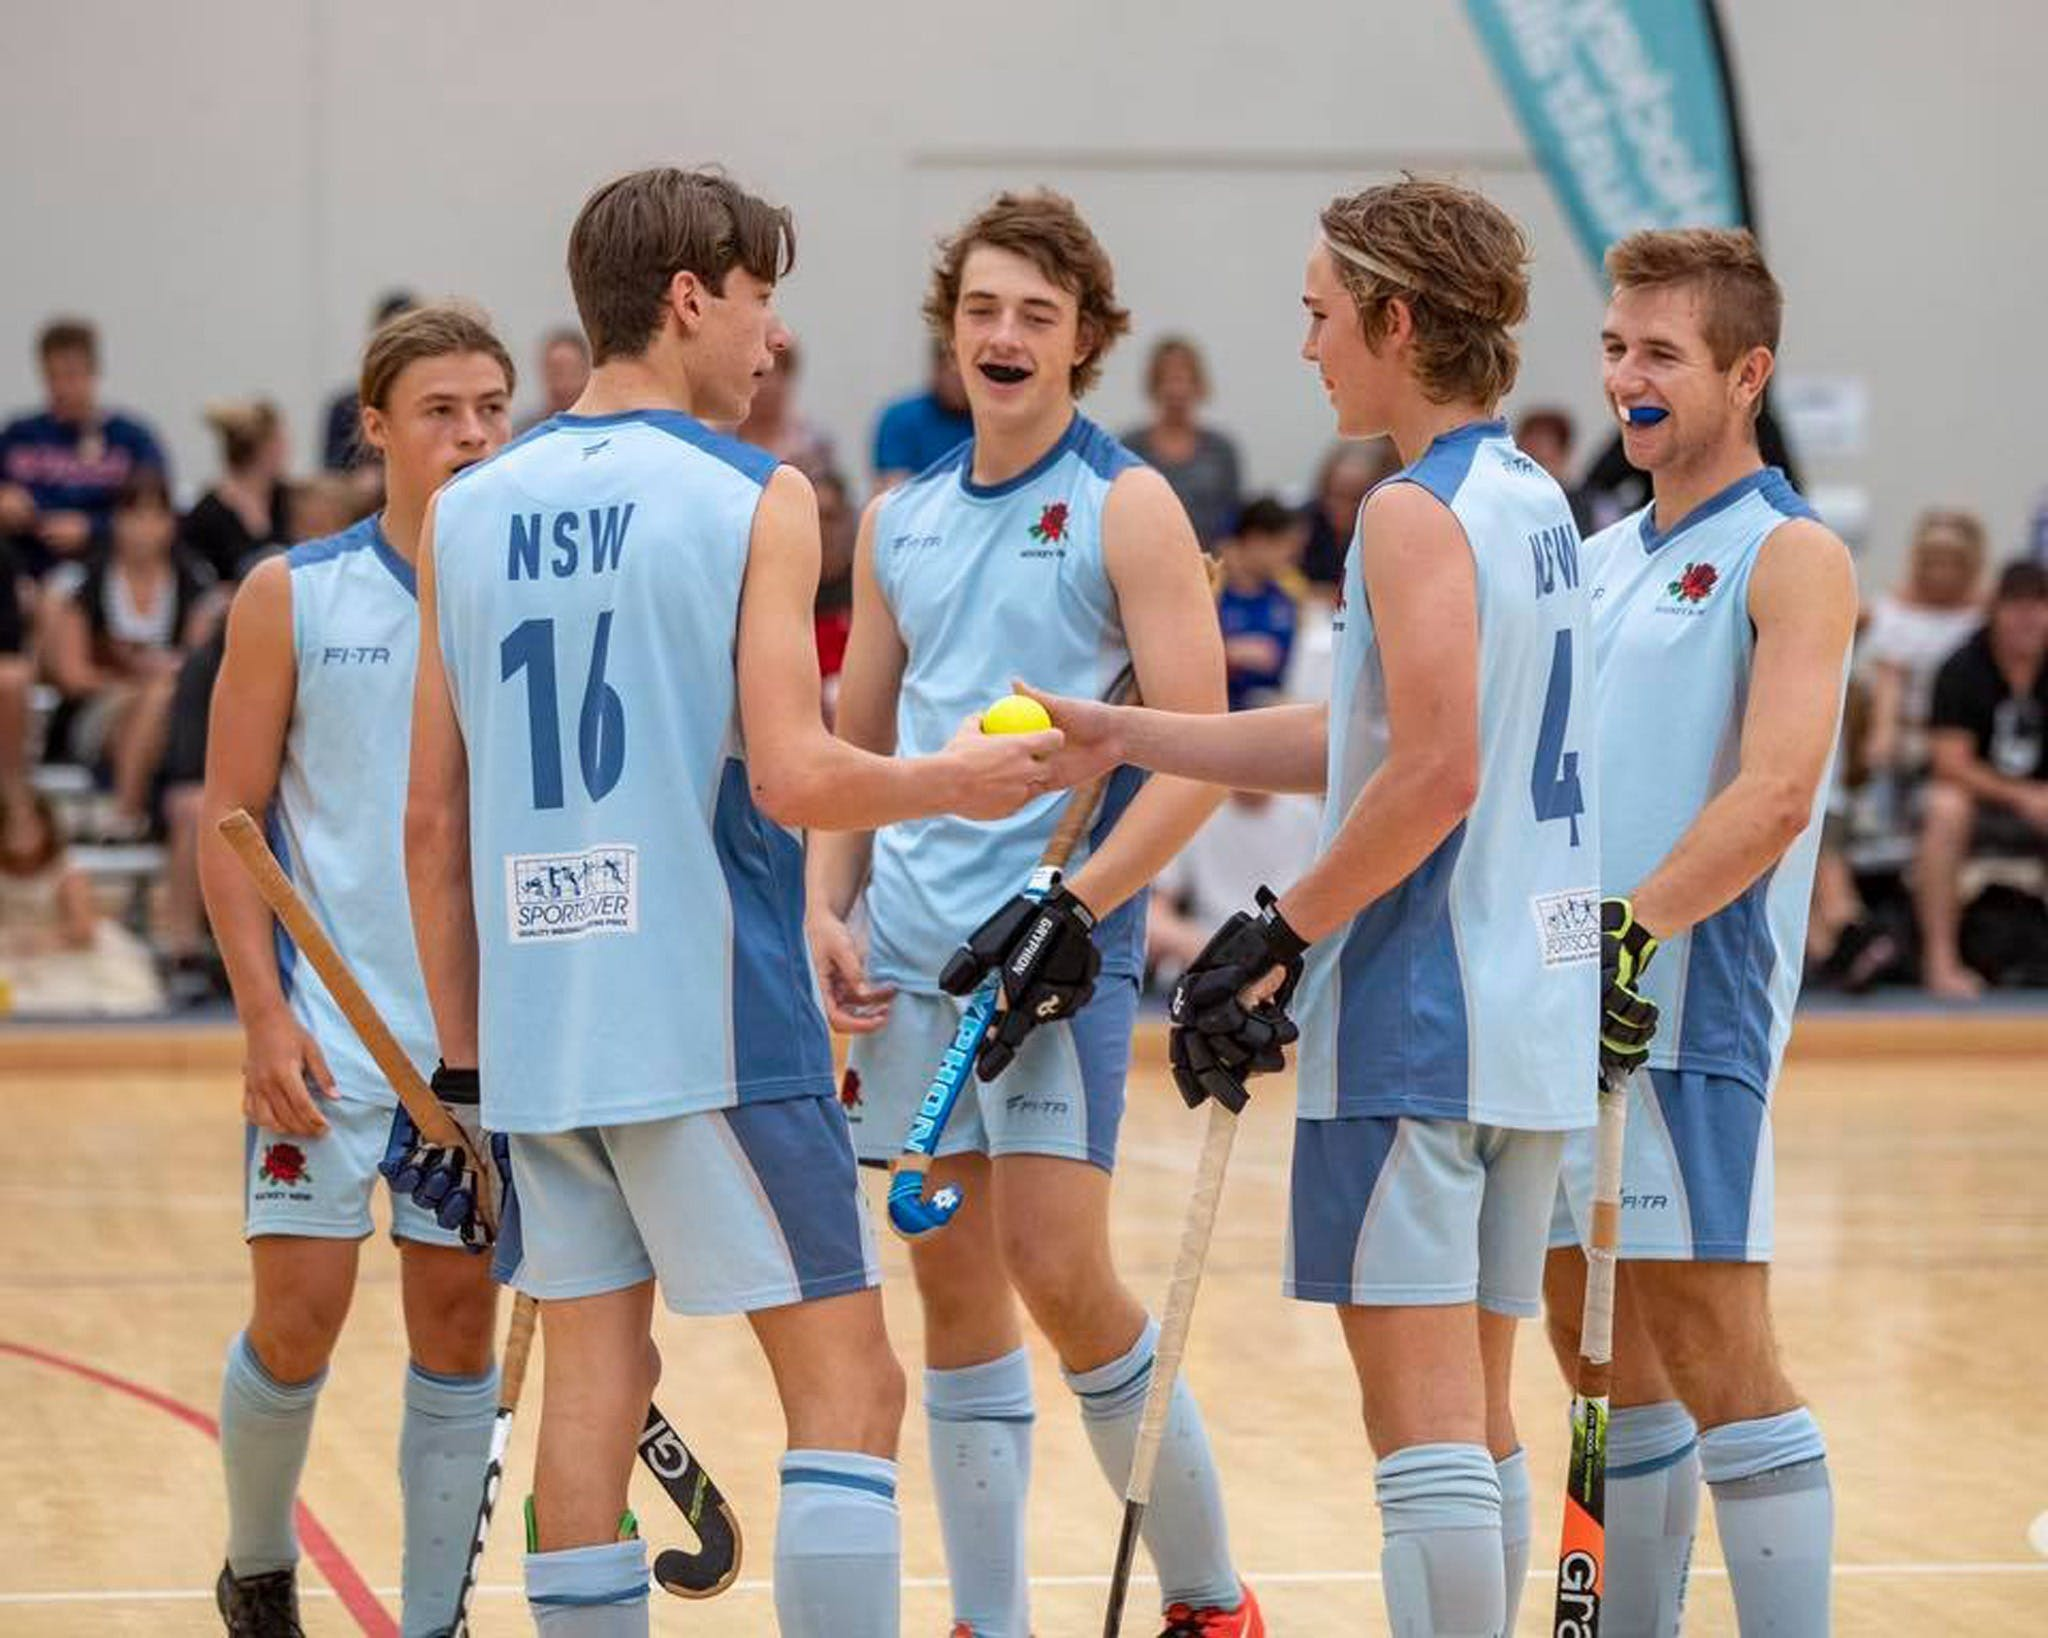 Hockey NSW Indoor State Championship  Open Men - Foster Accommodation